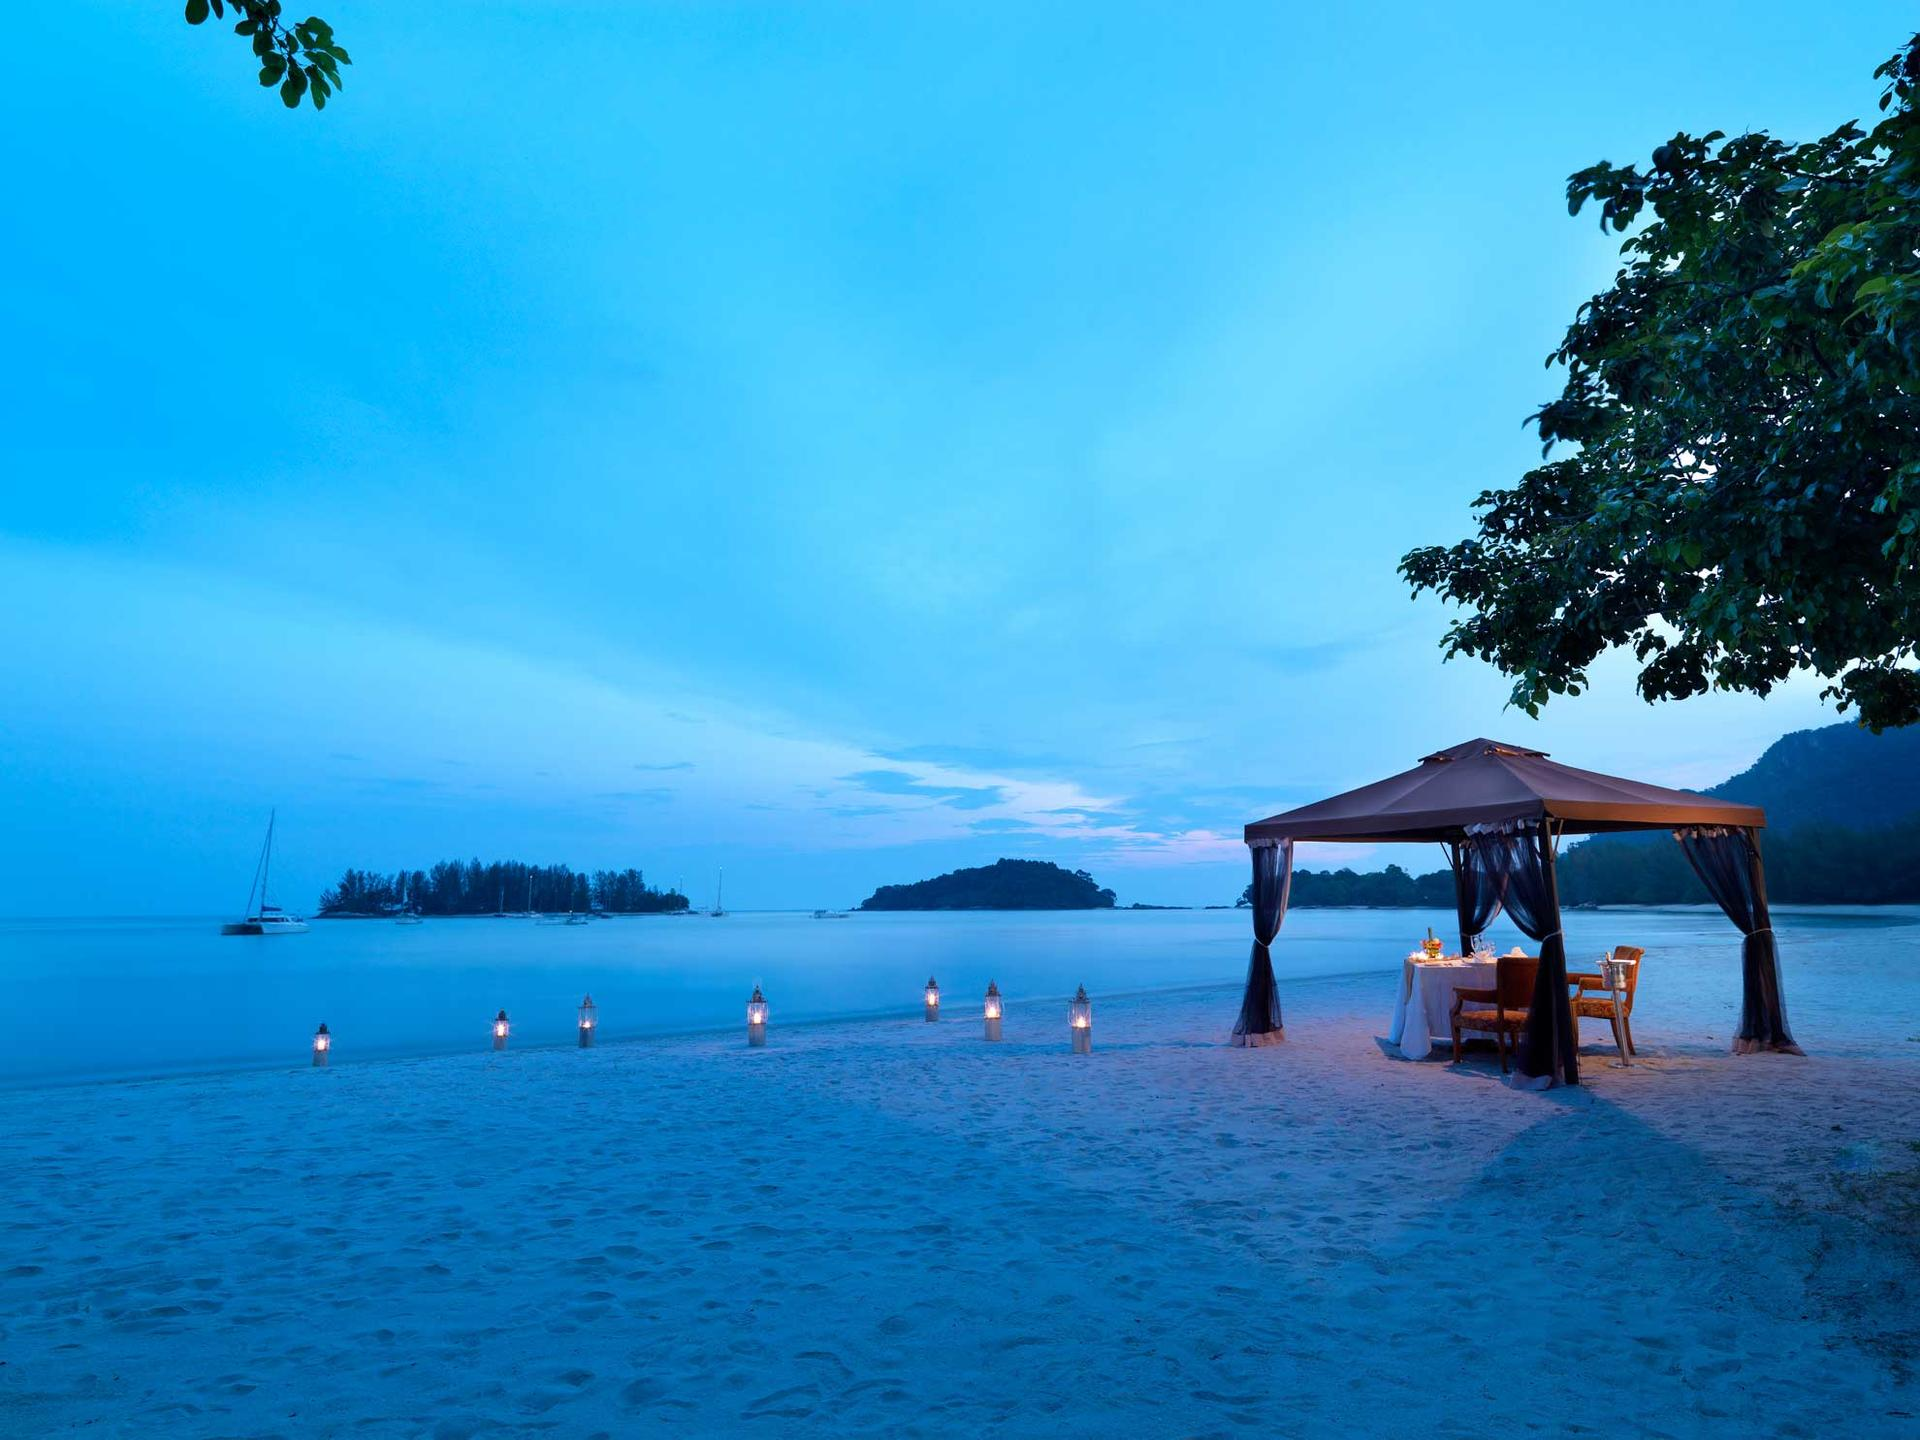 Private dining by the beach in the evening